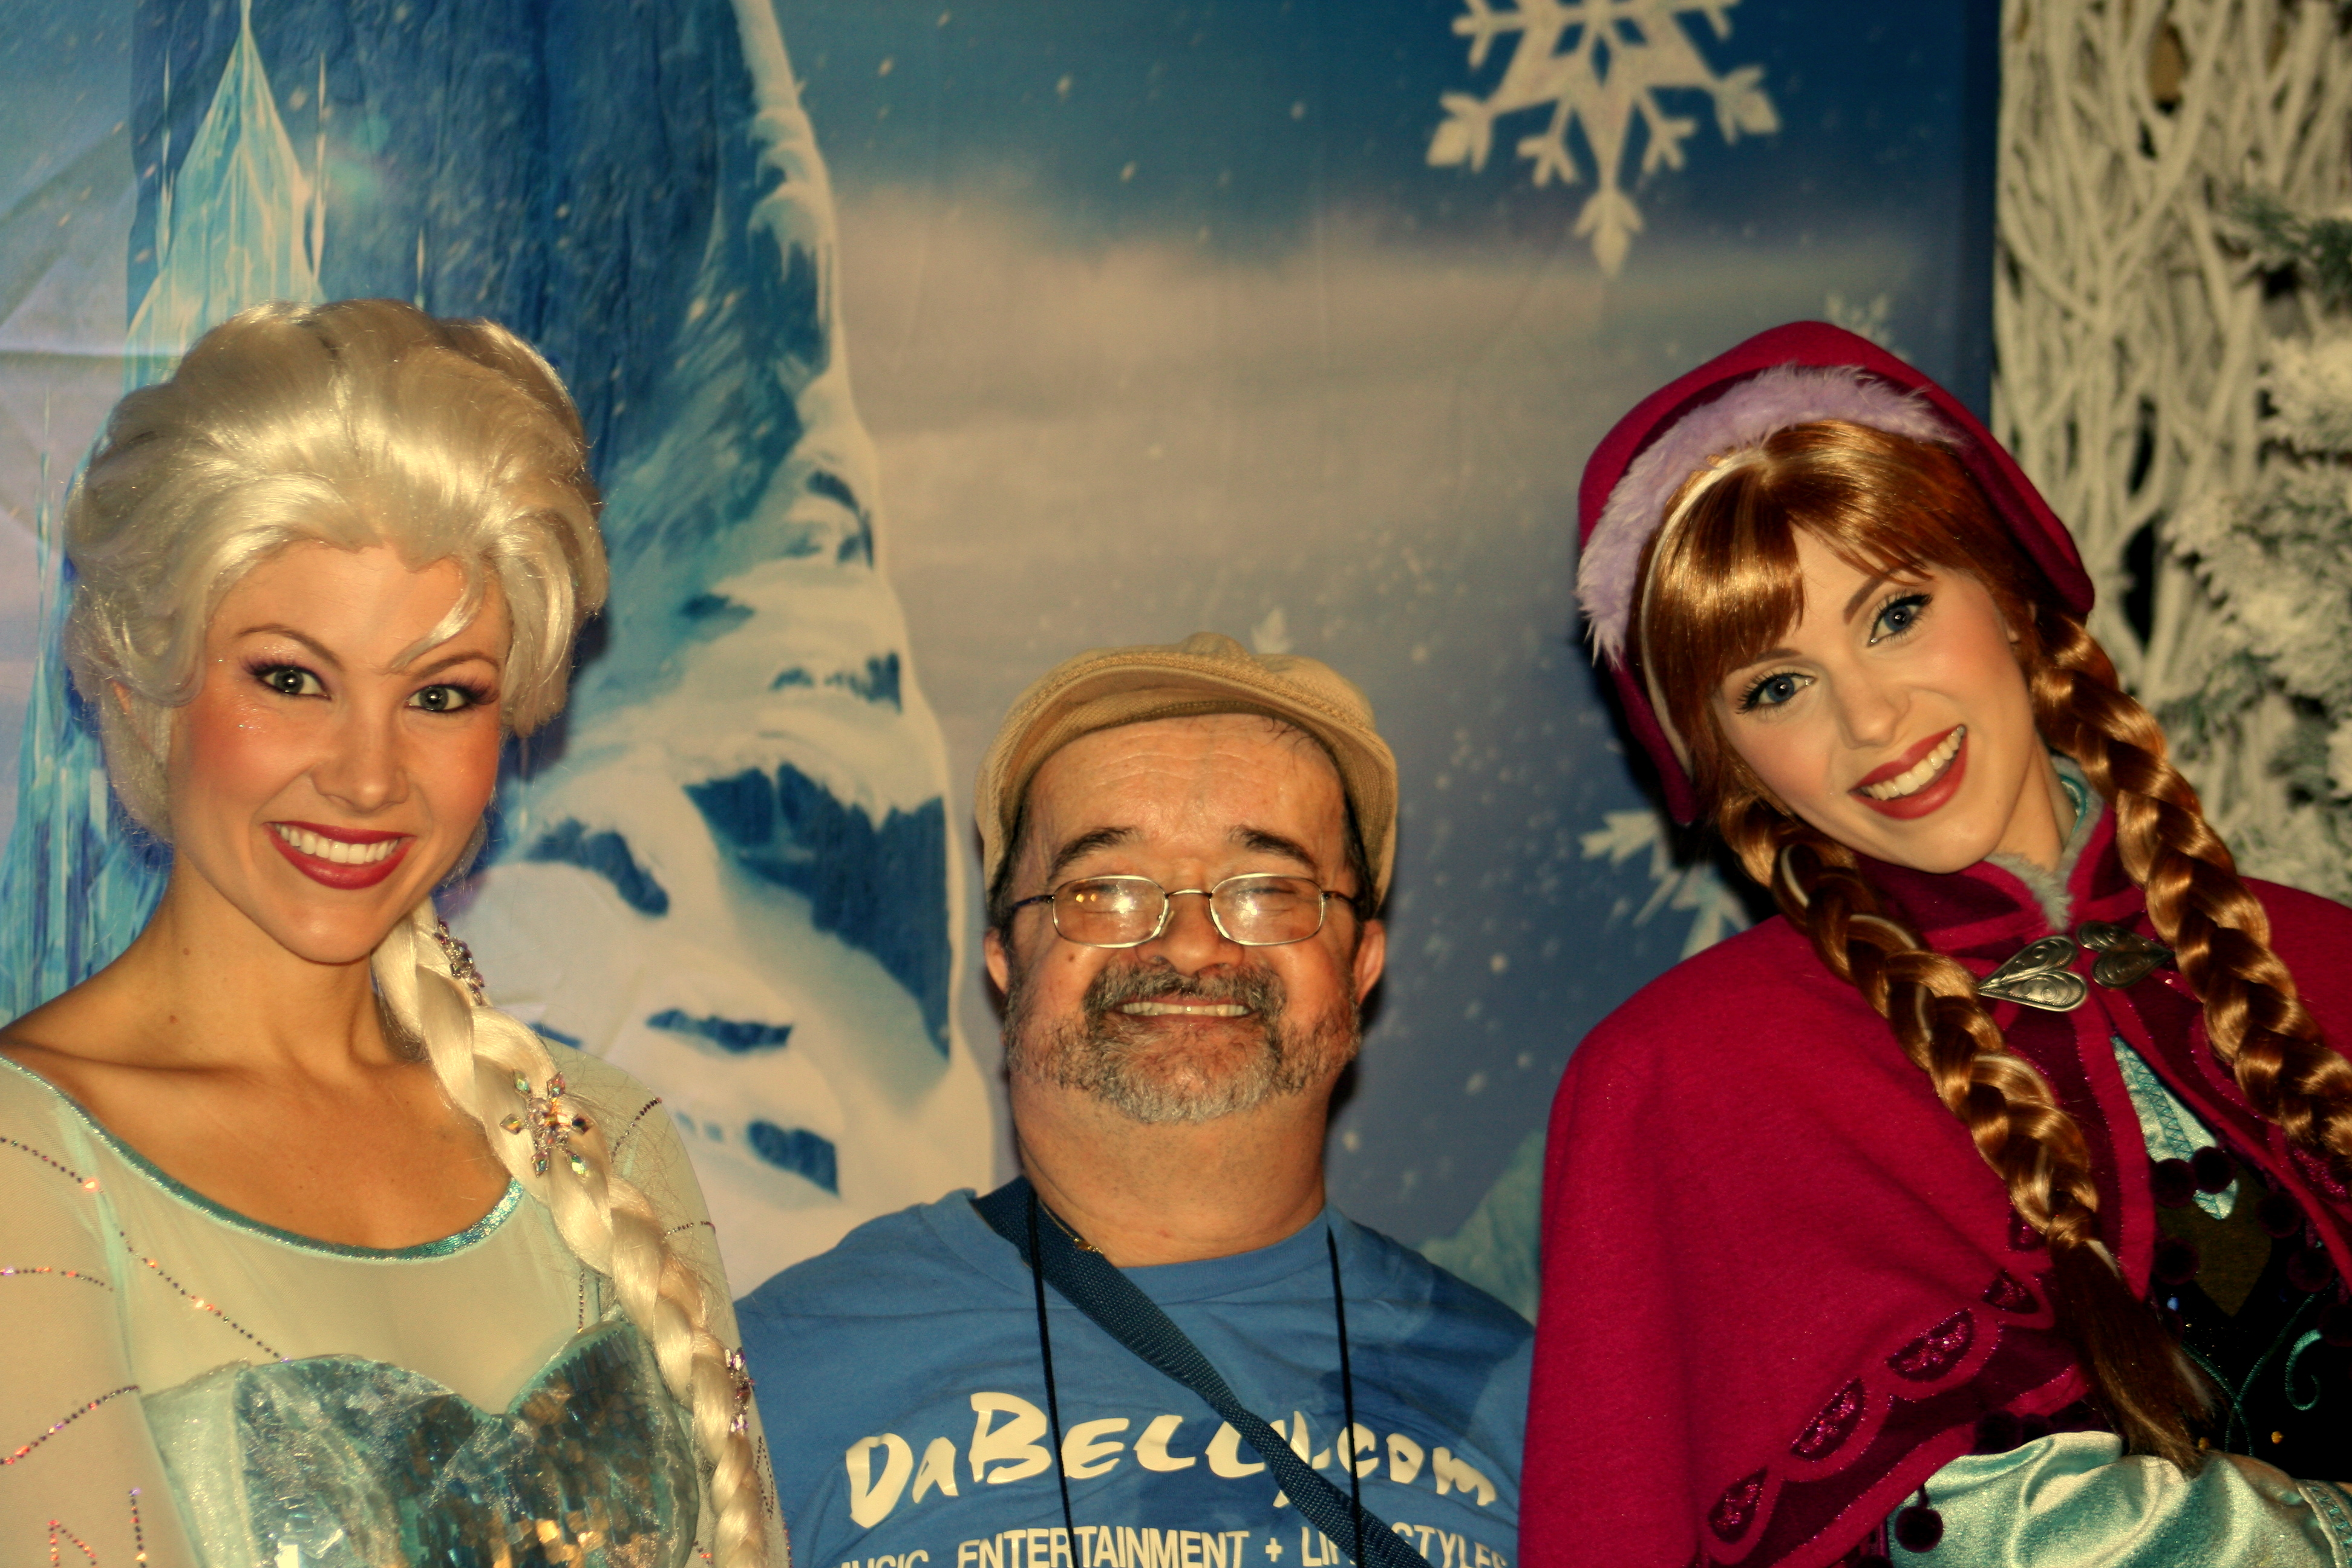 Uncle Rasputin warms up beauties from Frozen at Disneyland's 59th anniversary.